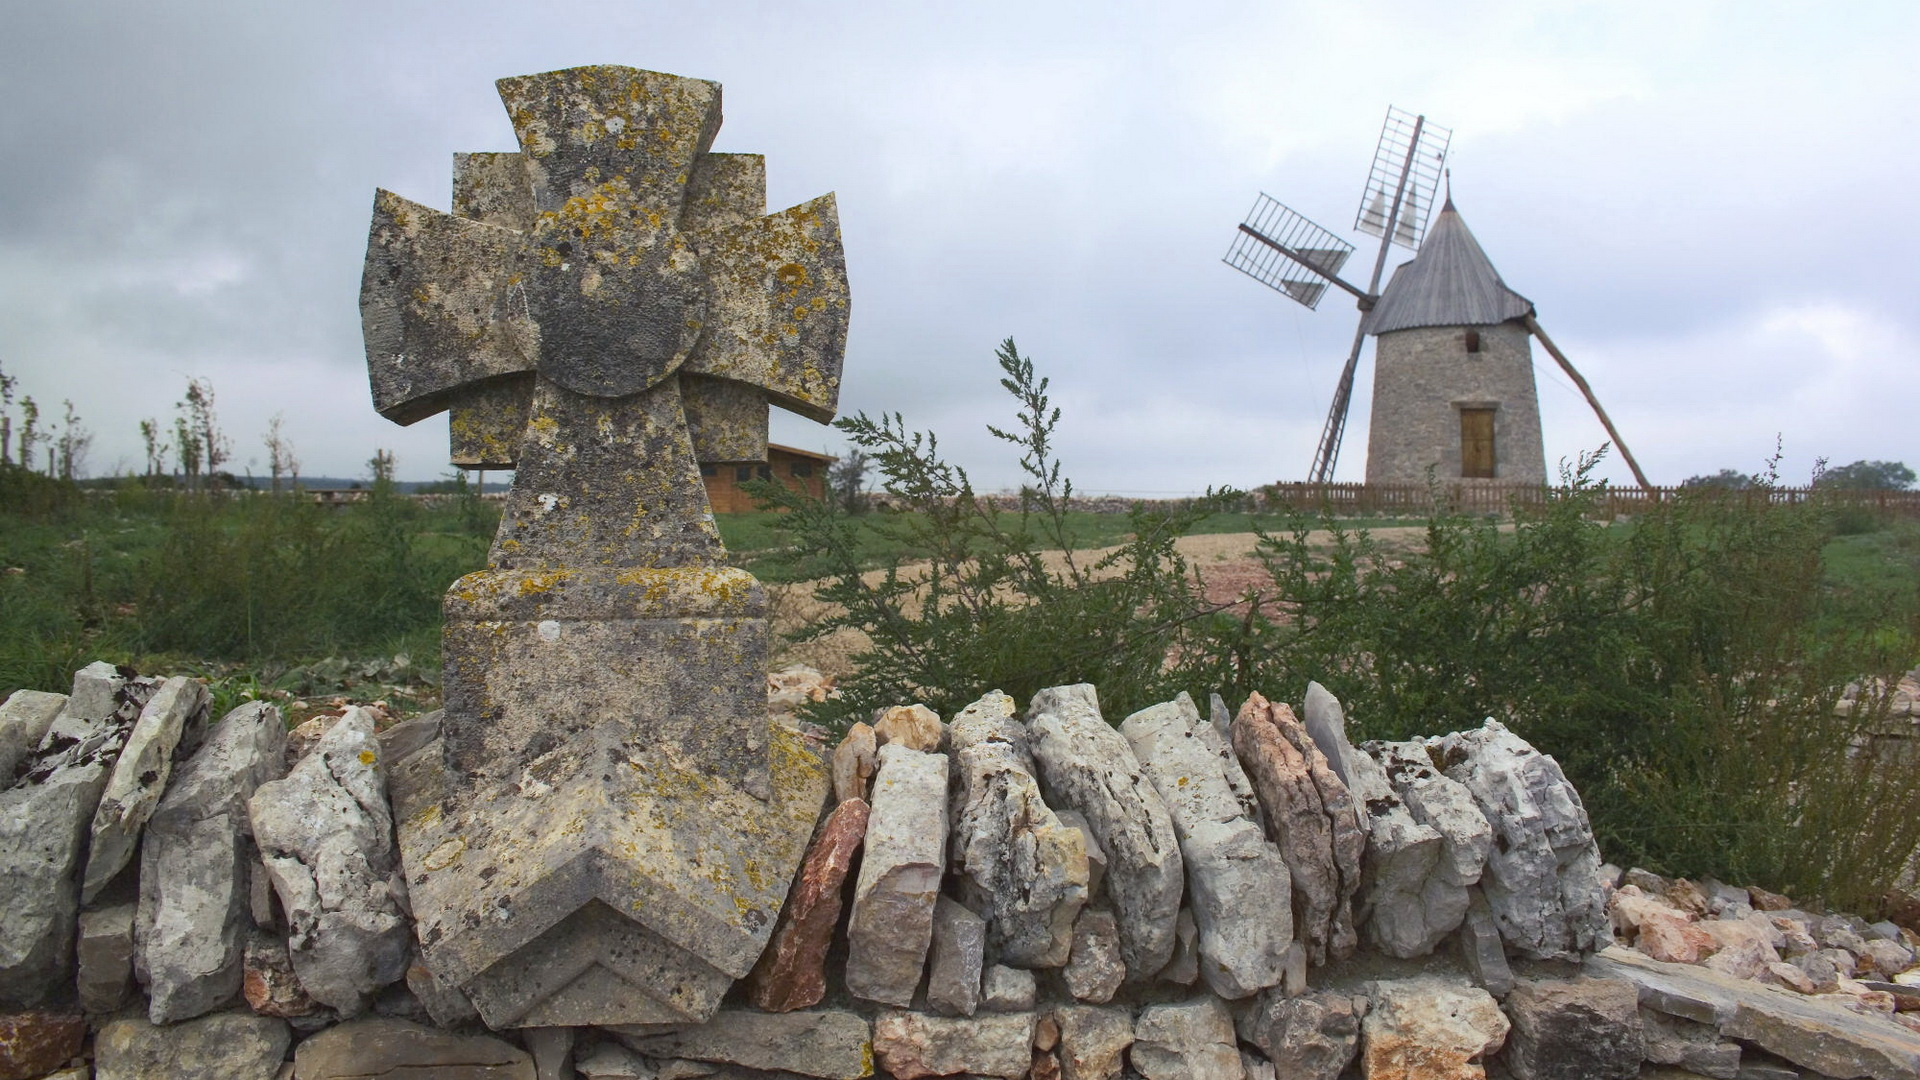 click to free download the wallpaper--Natural Scenery photo - Both House and Stones in Windmill Design, Everything is Fine and Good 1920X1080 free wallpaper download